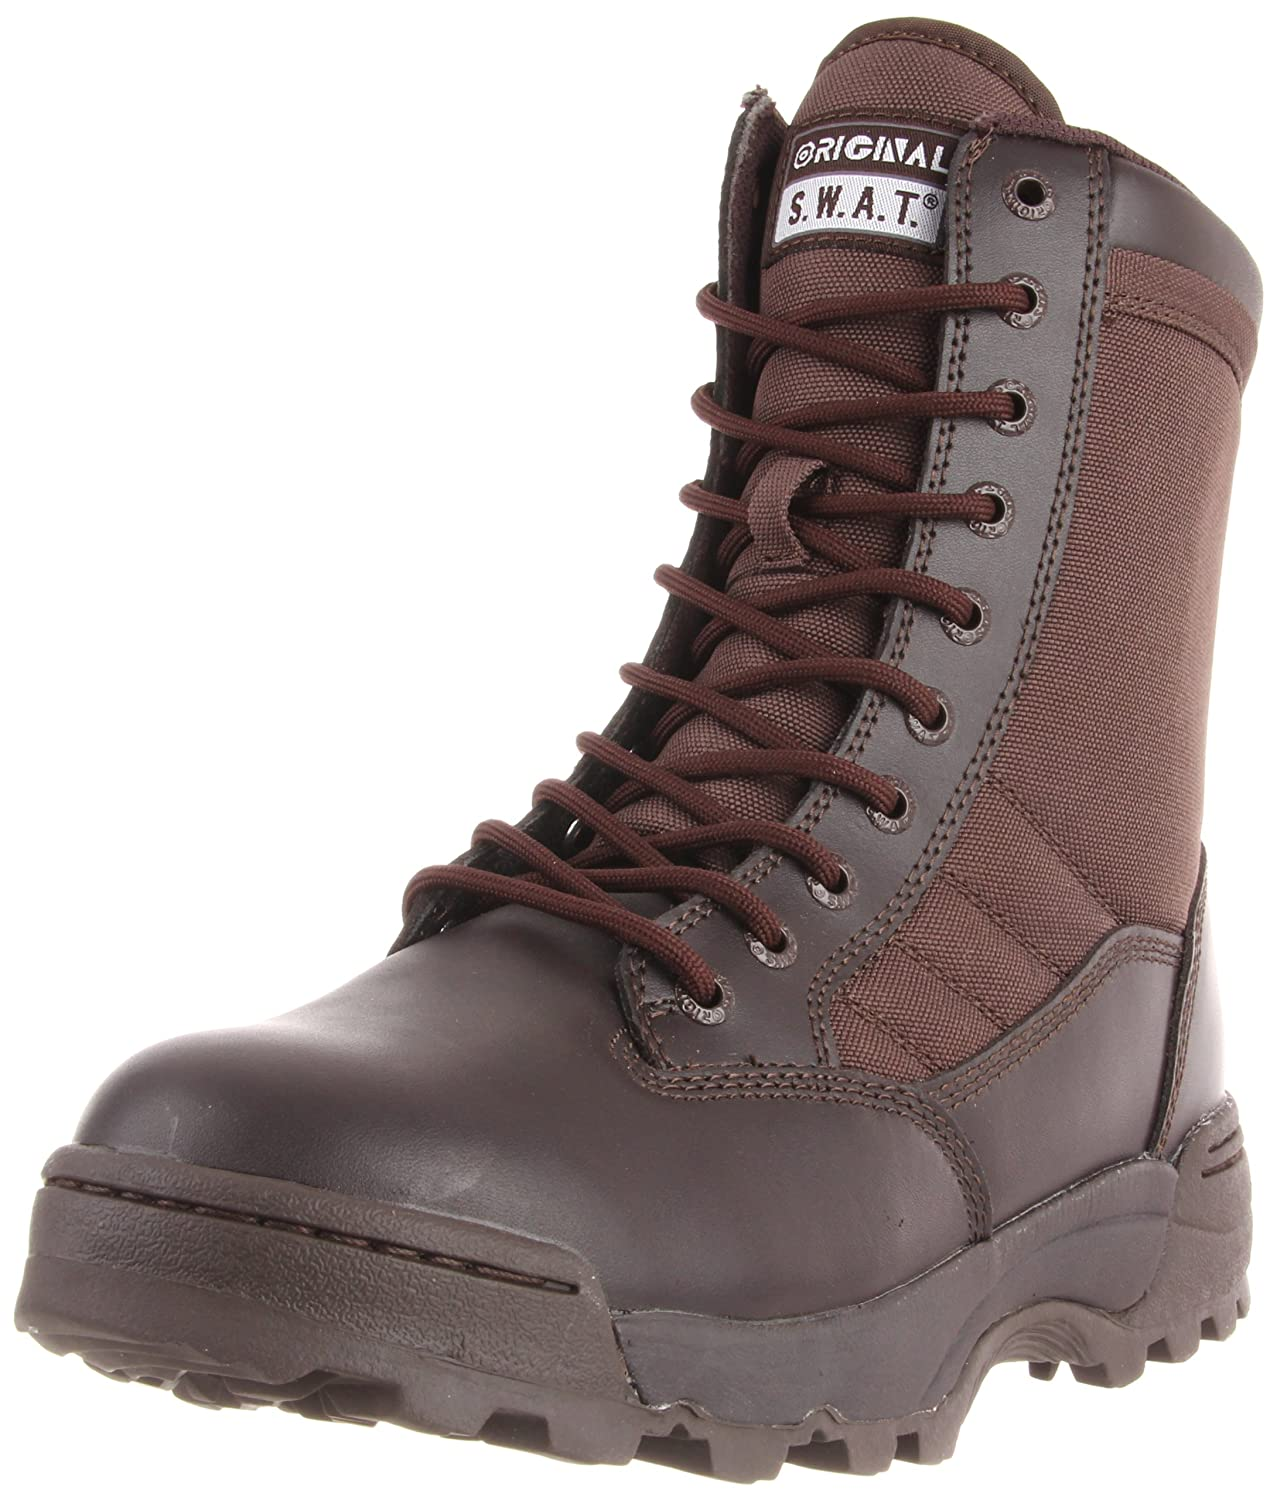 Men's Classic 9-Inch Tactical Military Style Combat Boot - DeluxeAdultCostumes.com